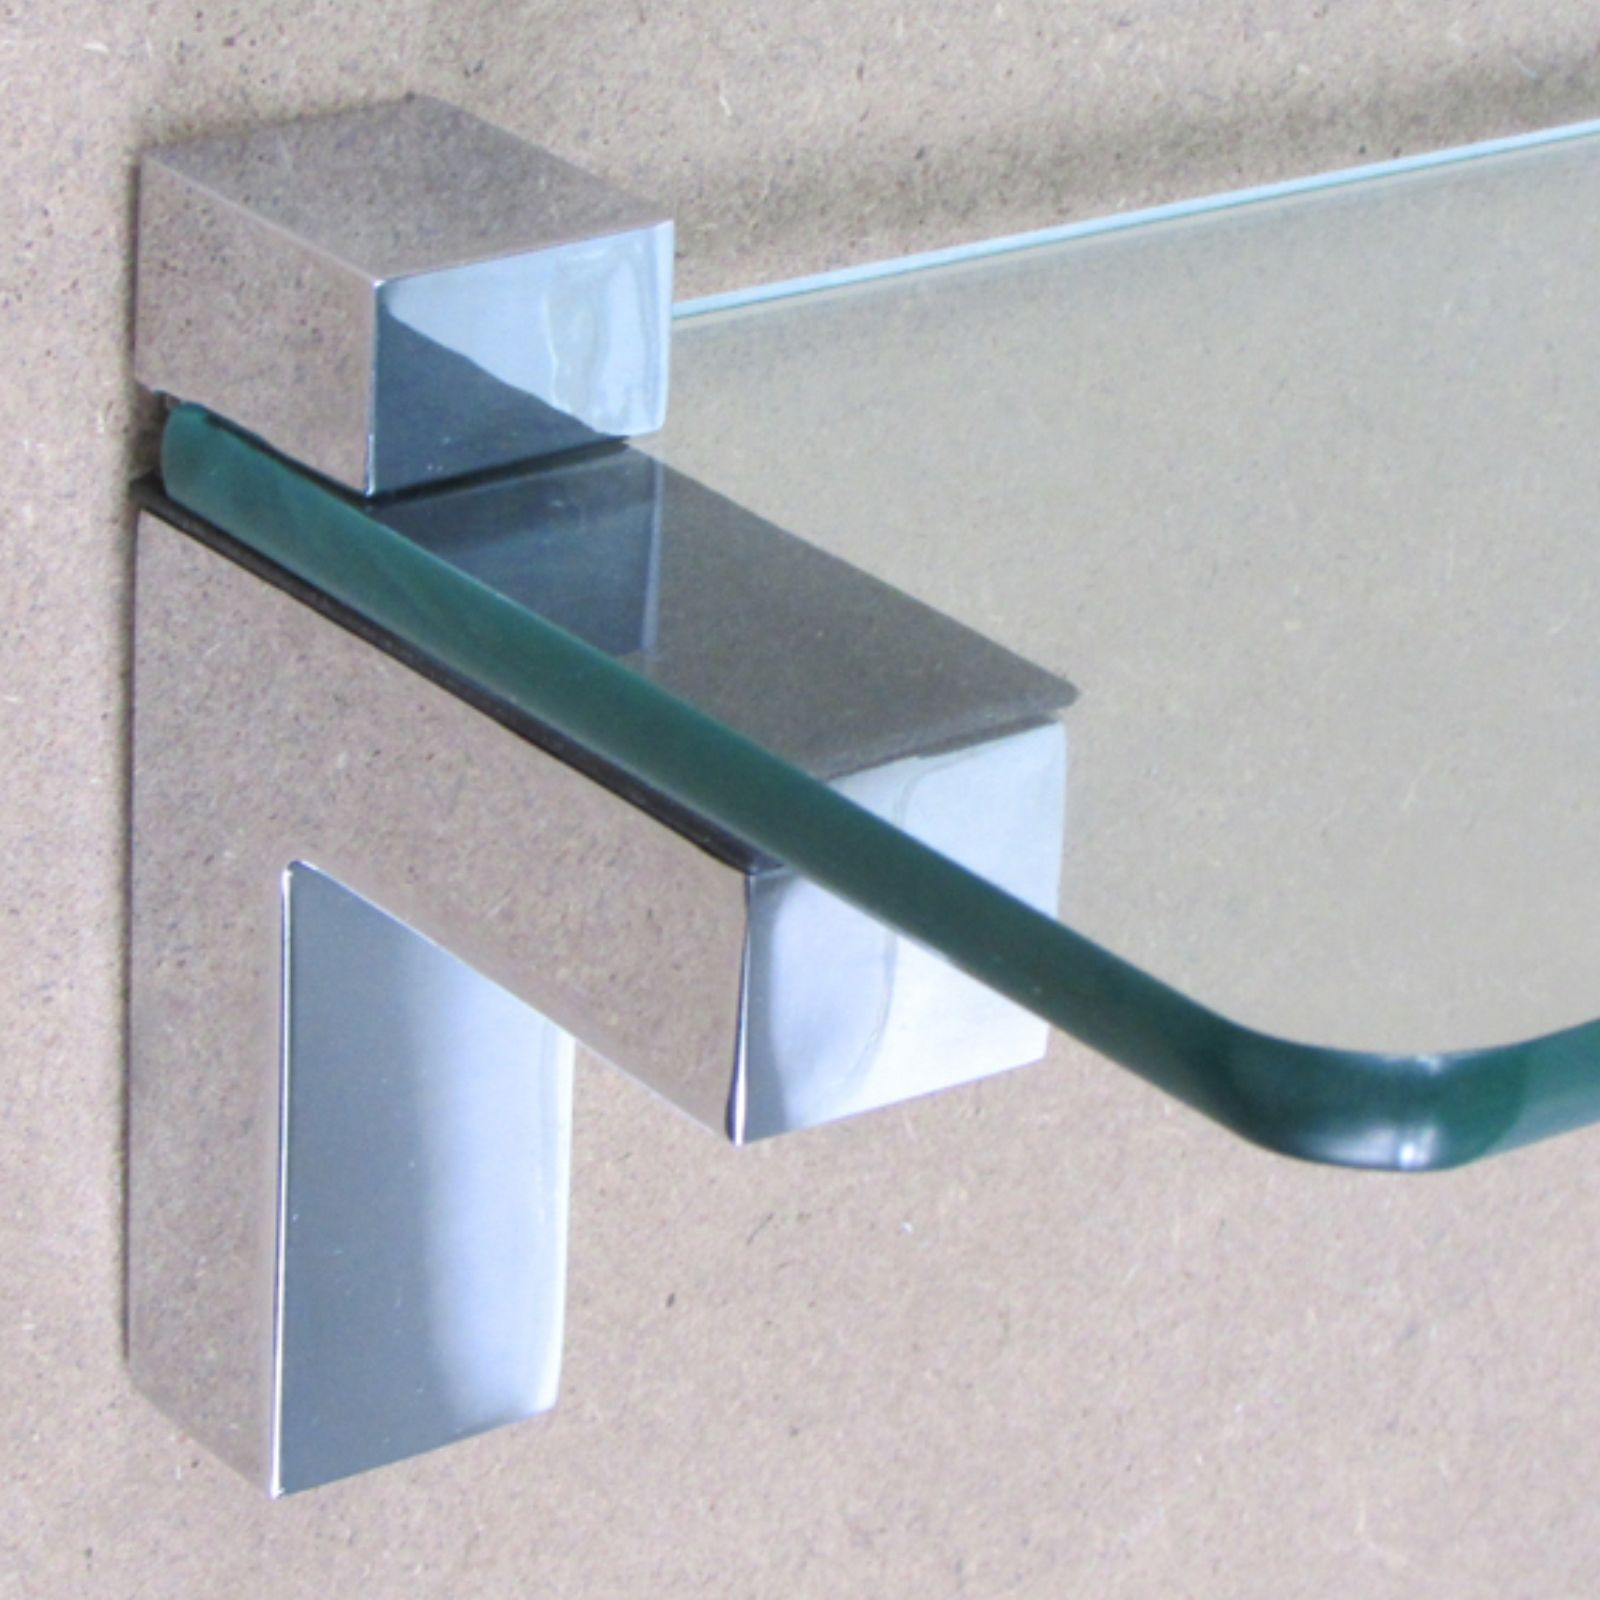 Shelf Brackets For Glass Wooden & Acrylic Shelves Hold 2-20 mm ...